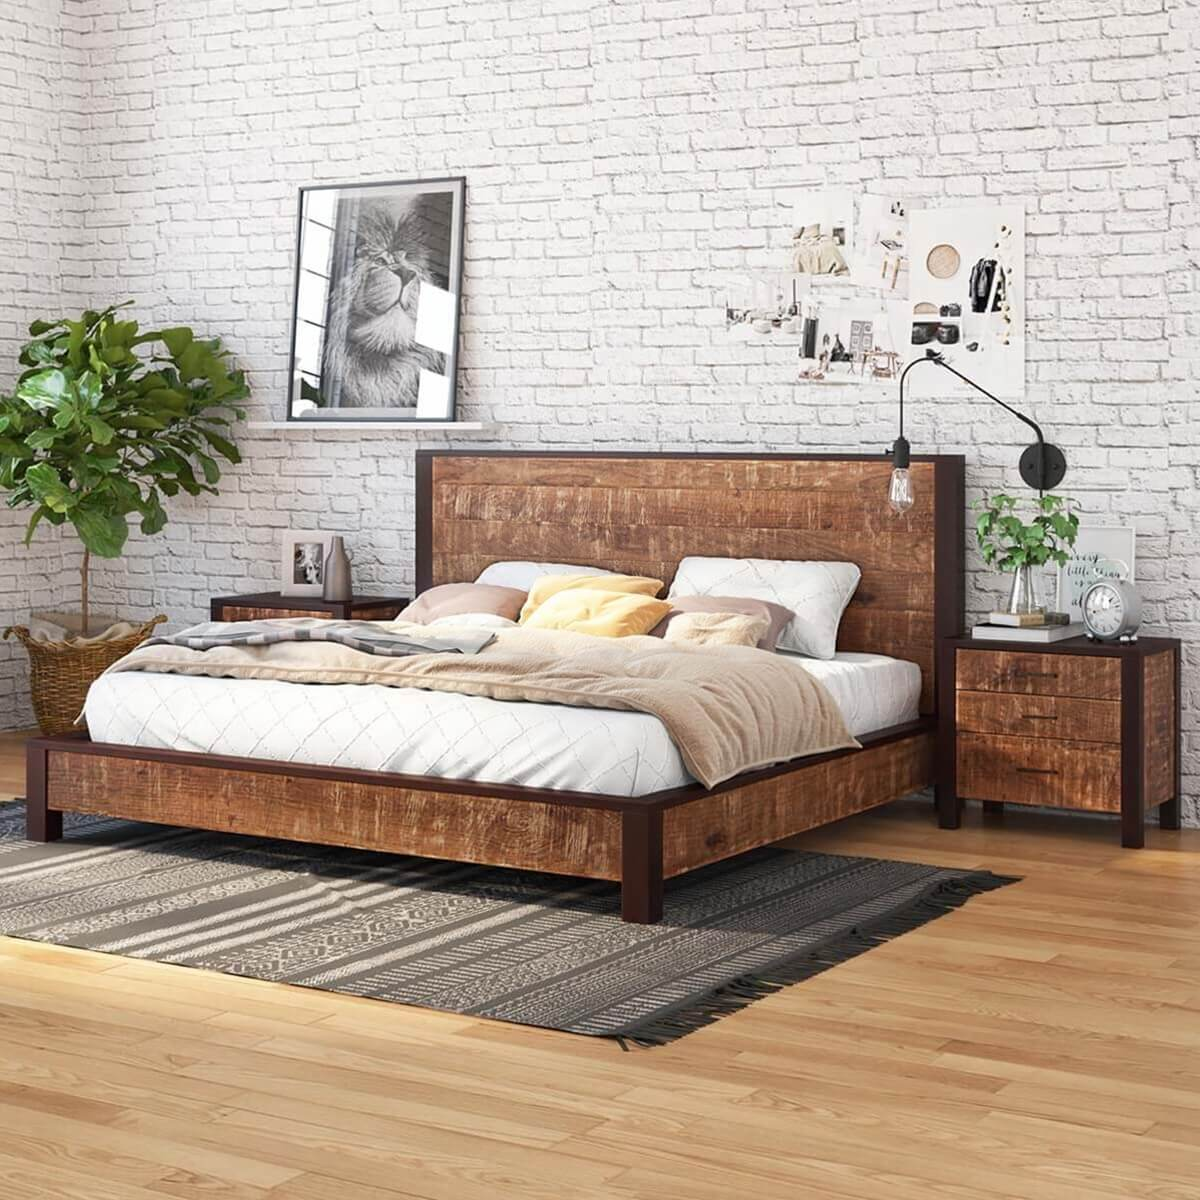 New orleans solid wood platform bed frame w headboard and Wood platform bed